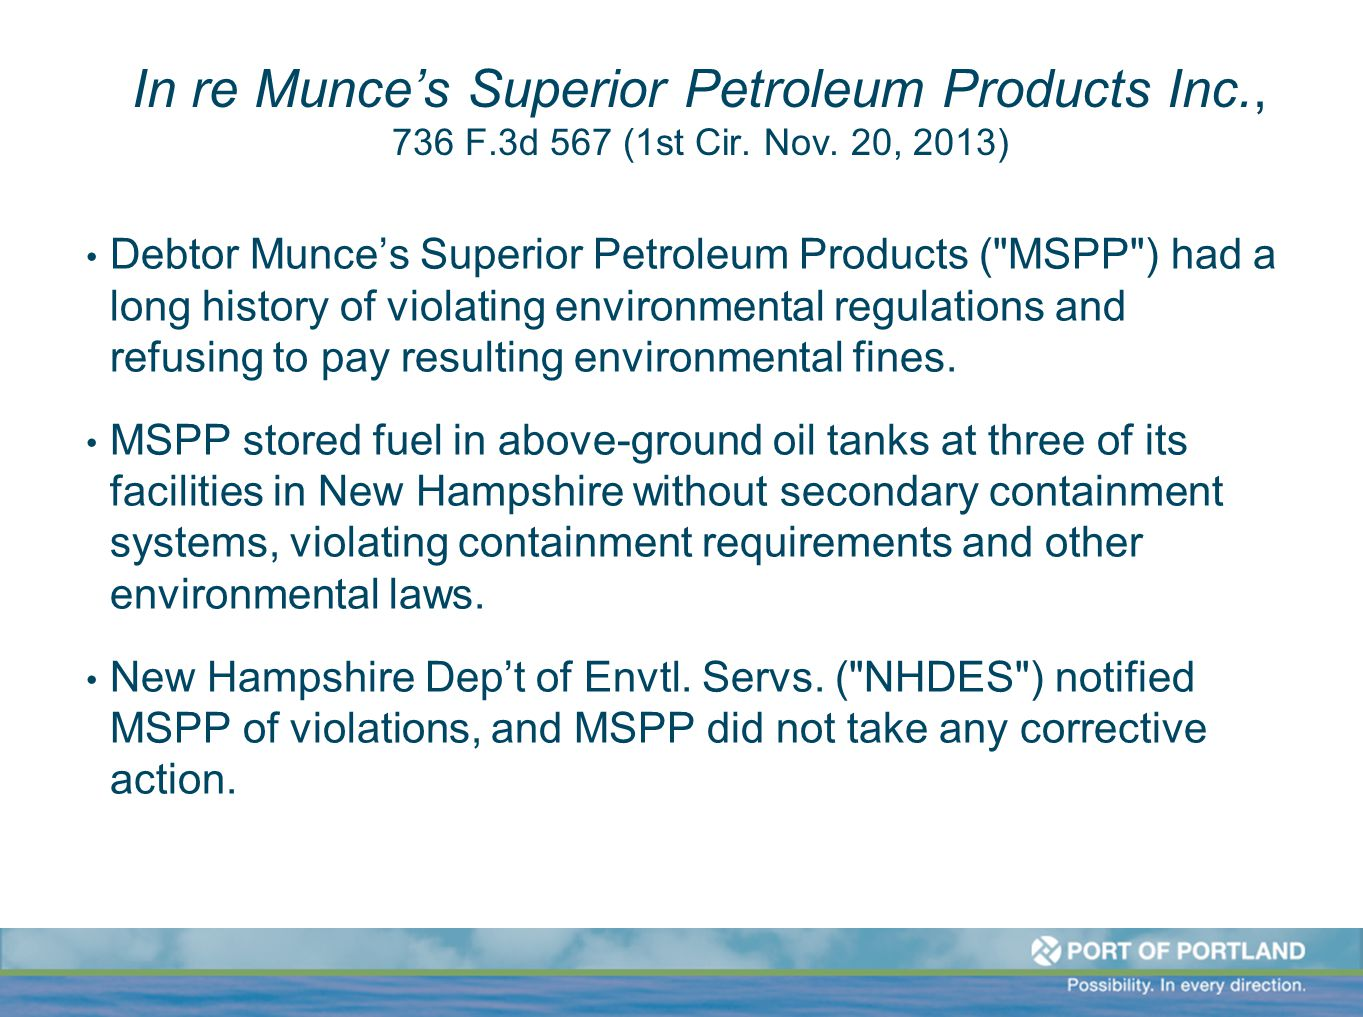 In re Munce's Superior Petroleum Products Inc., 736 F.3d 567 (1st Cir. Nov. 20, 2013) Debtor Munce's Superior Petroleum Products (